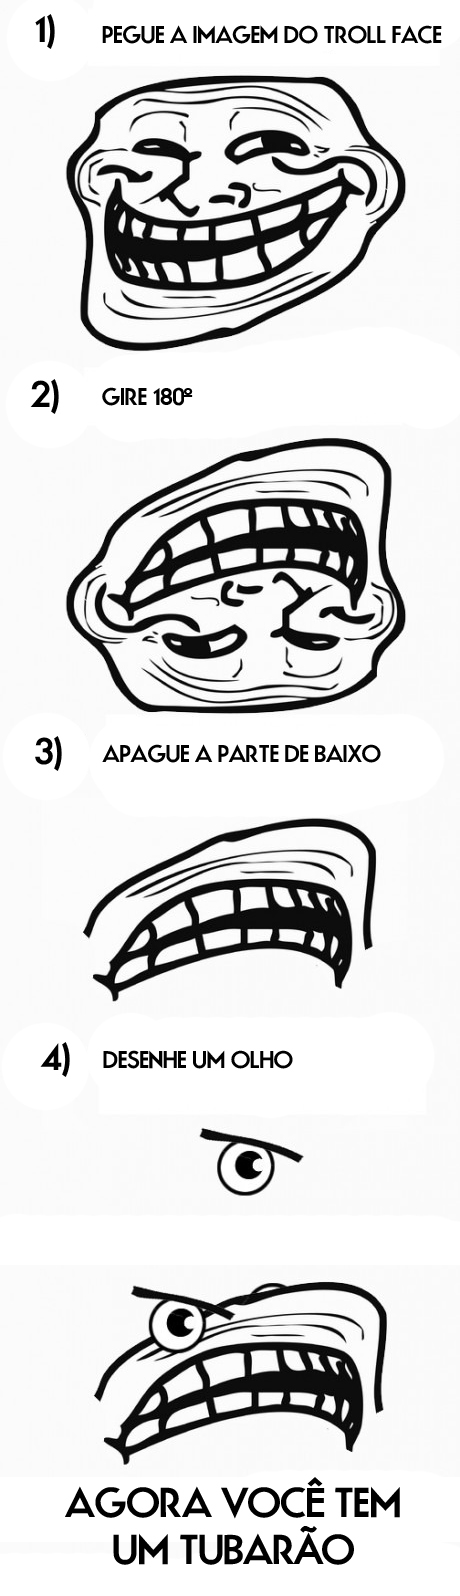 1 get a troll face image 2 turn it 180º 3 erase the bottom part